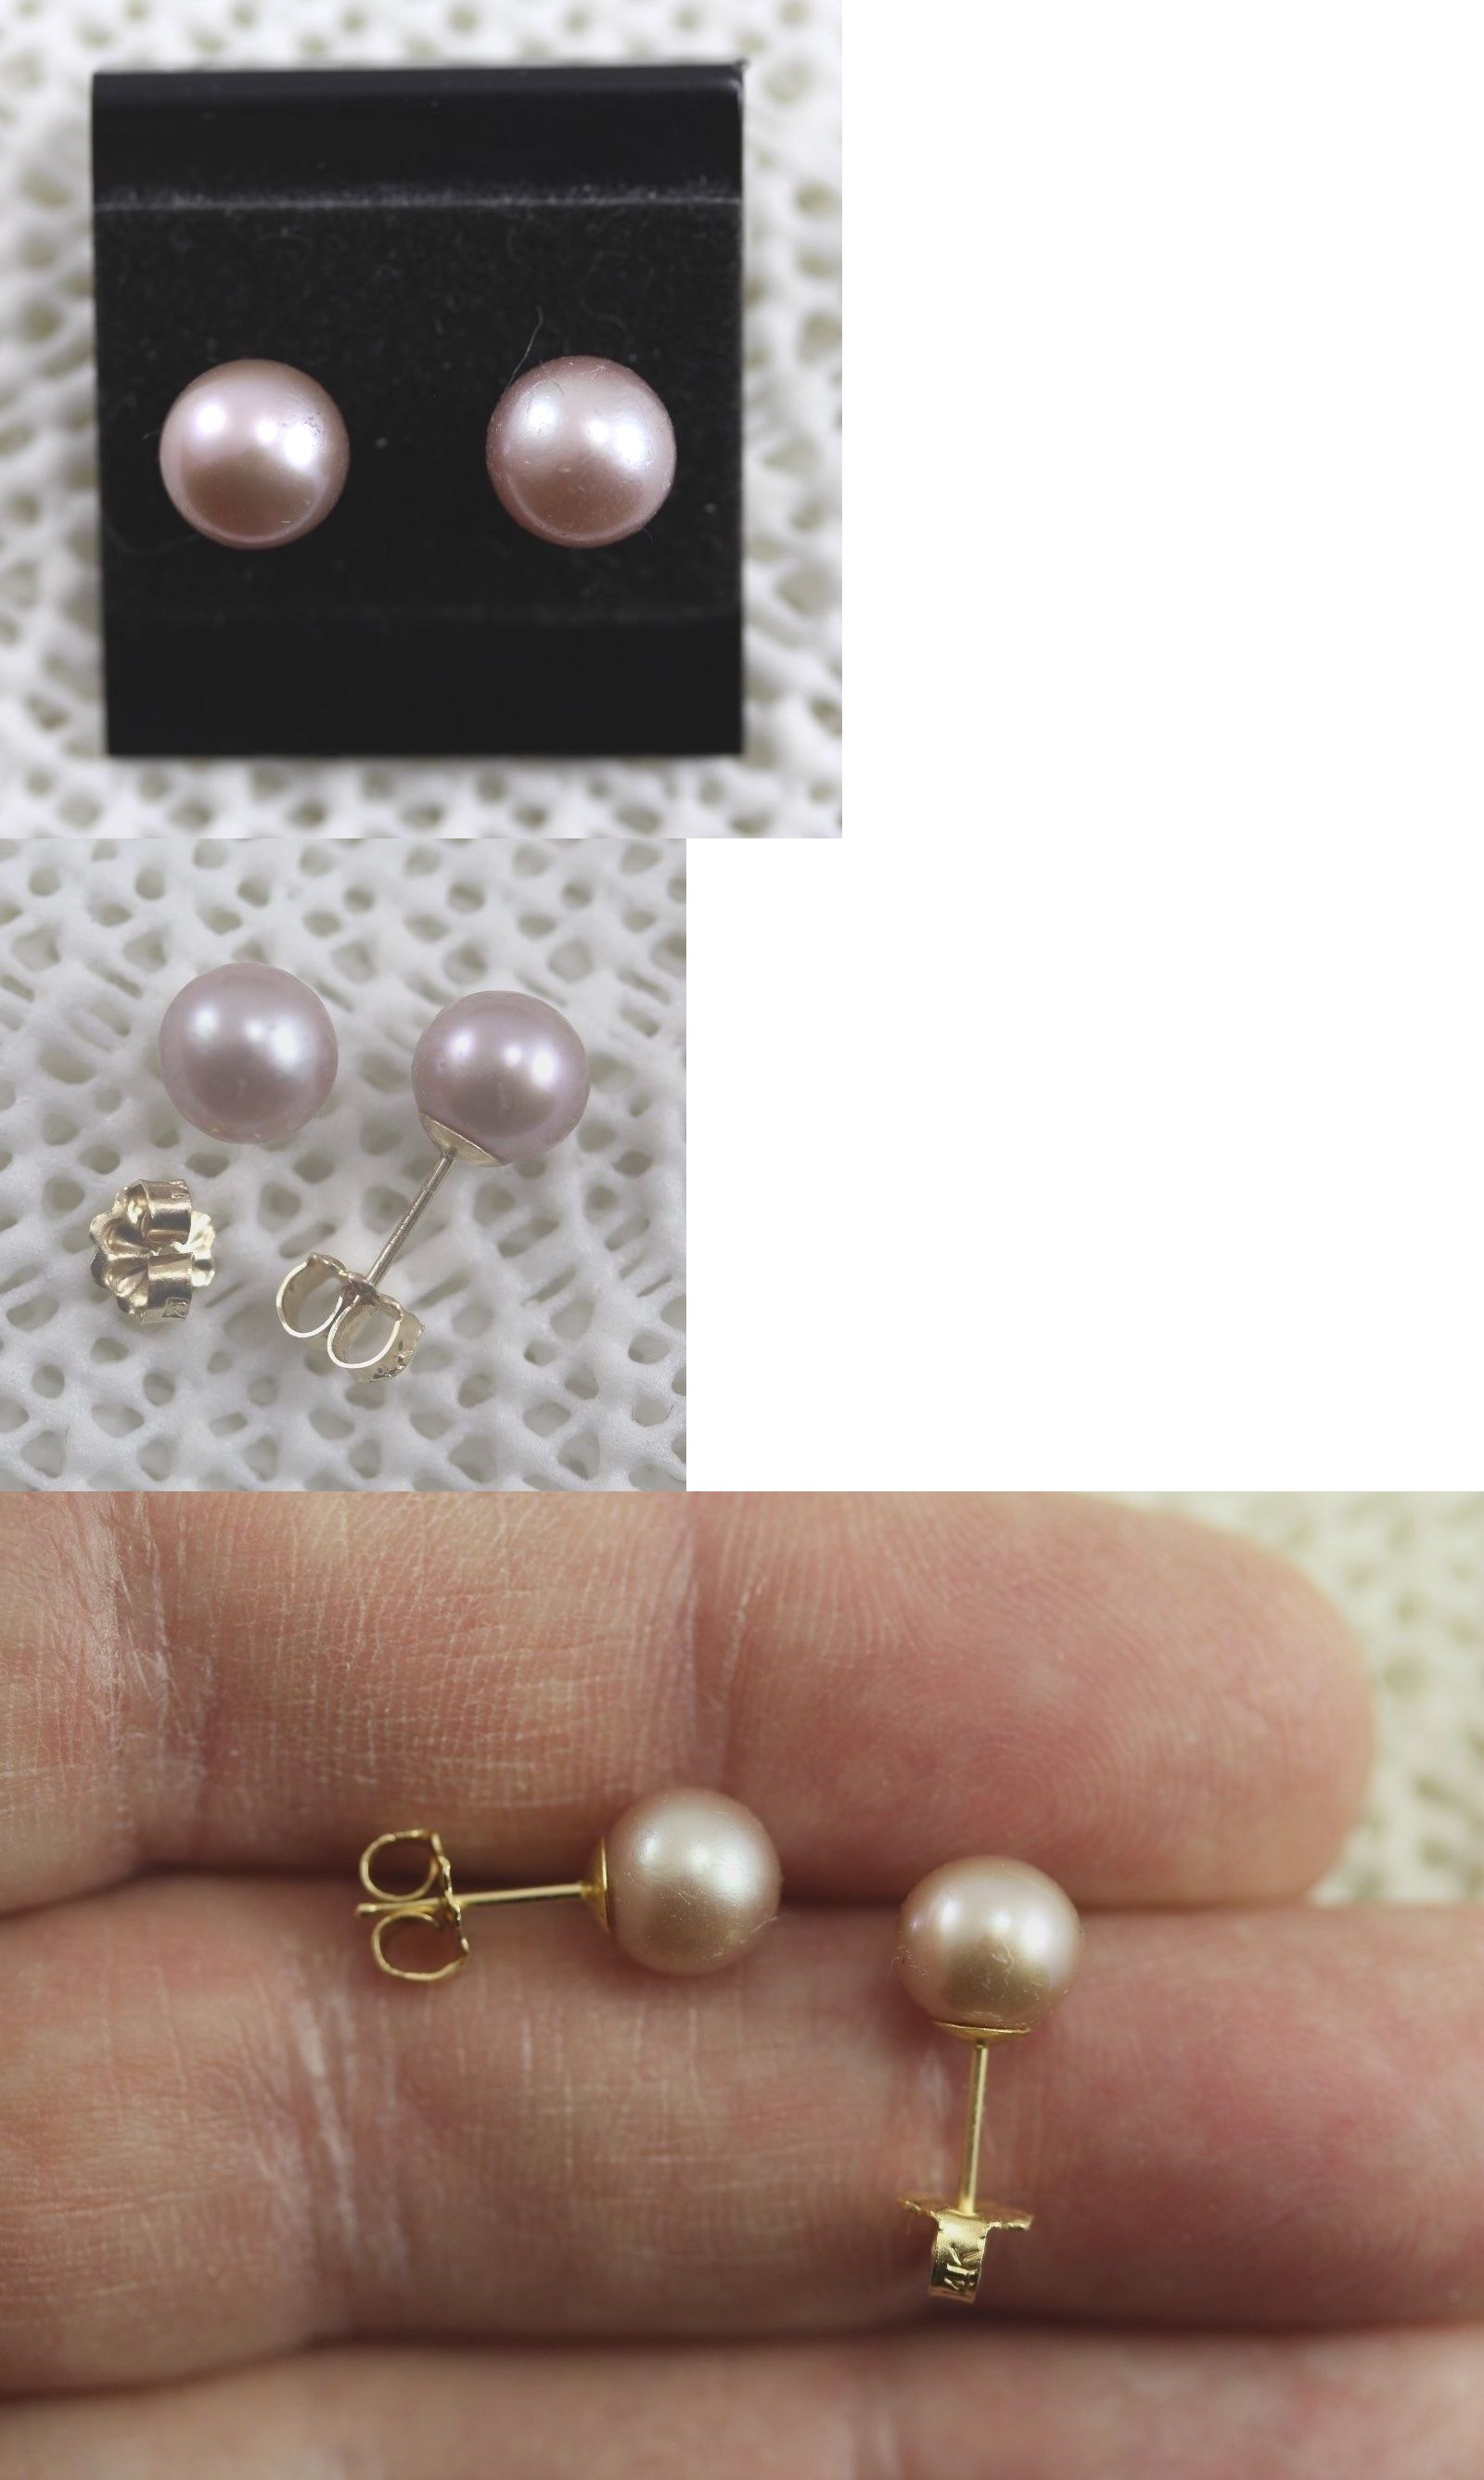 variants studs white of asp sterling oval combinations with stud black button on pink pearls earrings p pearl silver drops